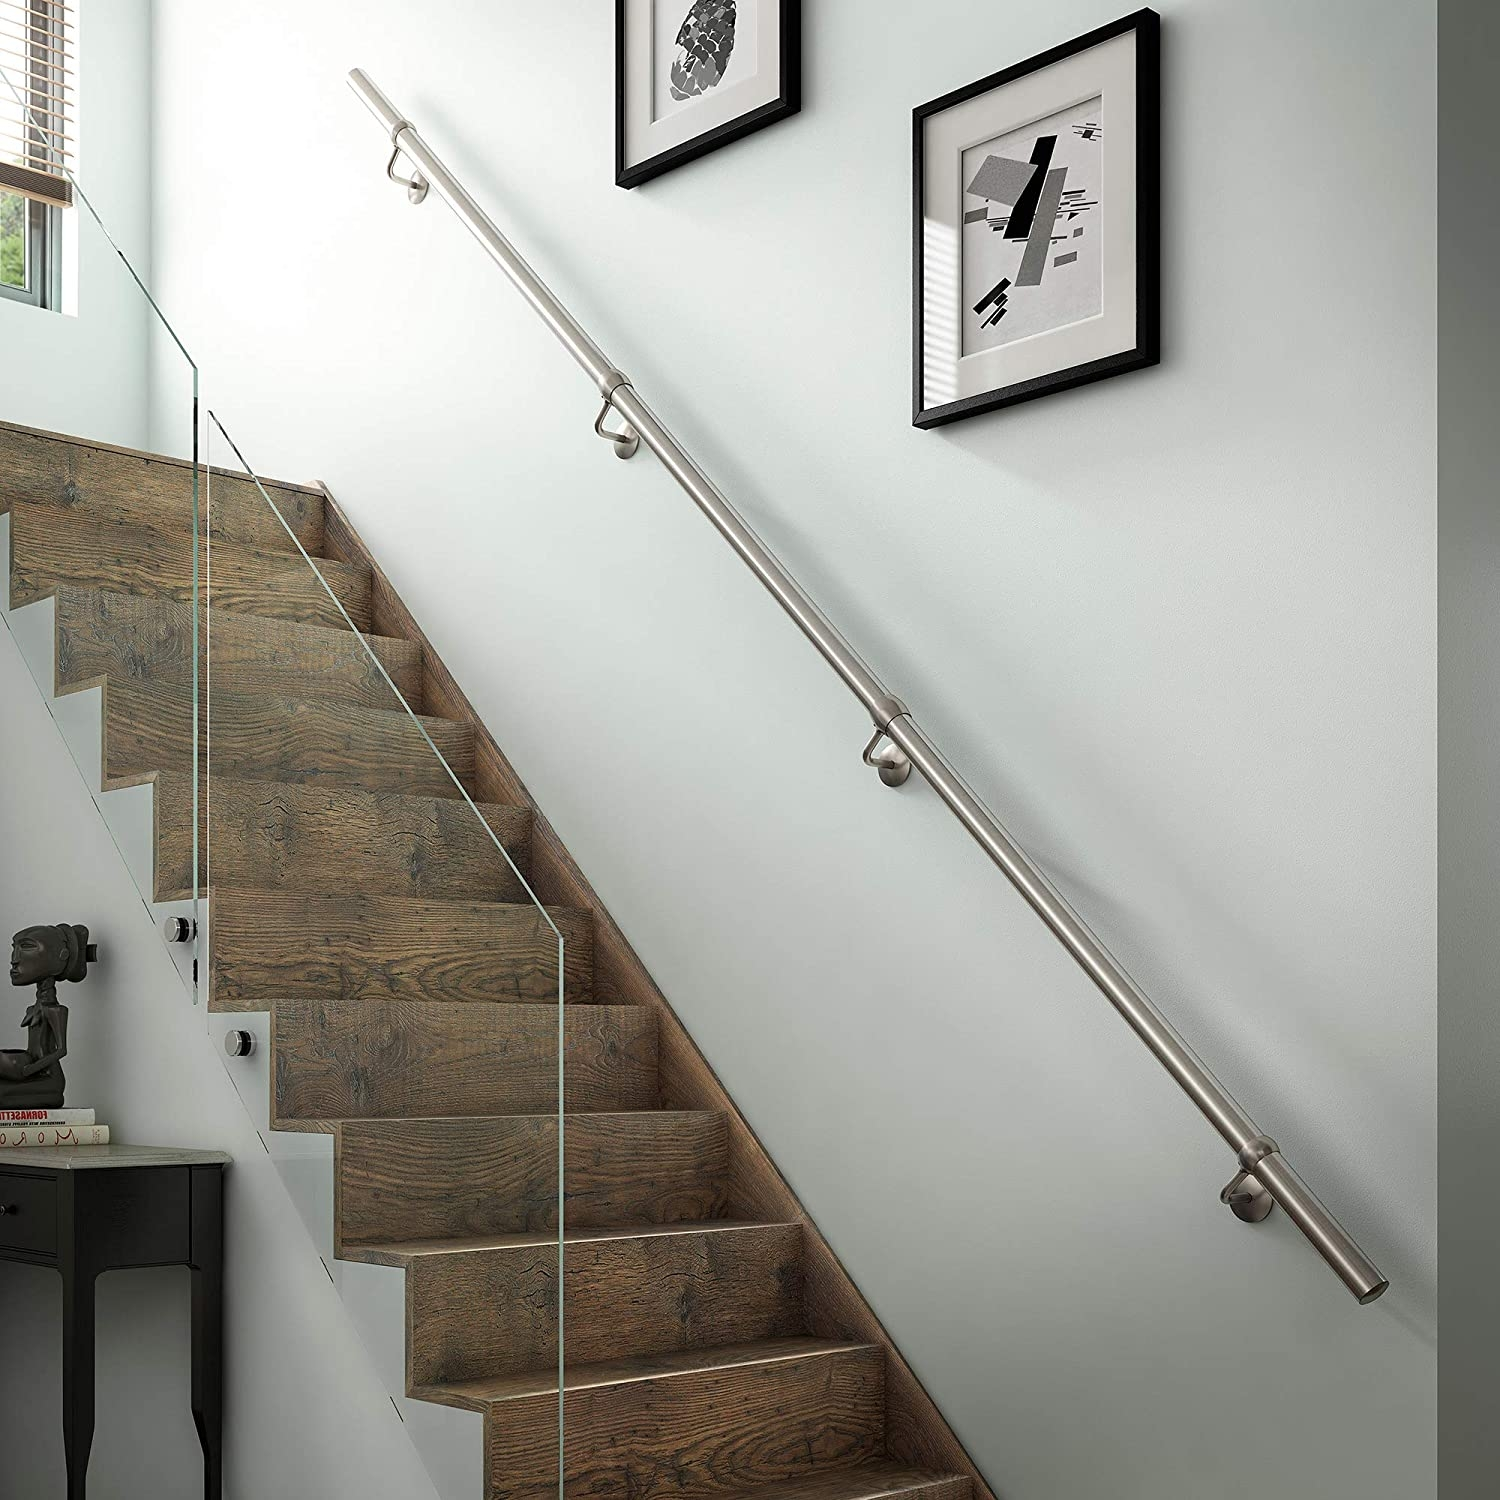 Stairs Staircase Handrail Banister Rail Support Kit 3 6M Satin   Modern Banisters And Handrails   Oak   Minimalist Simple Stair   Modern Style   String   Grey